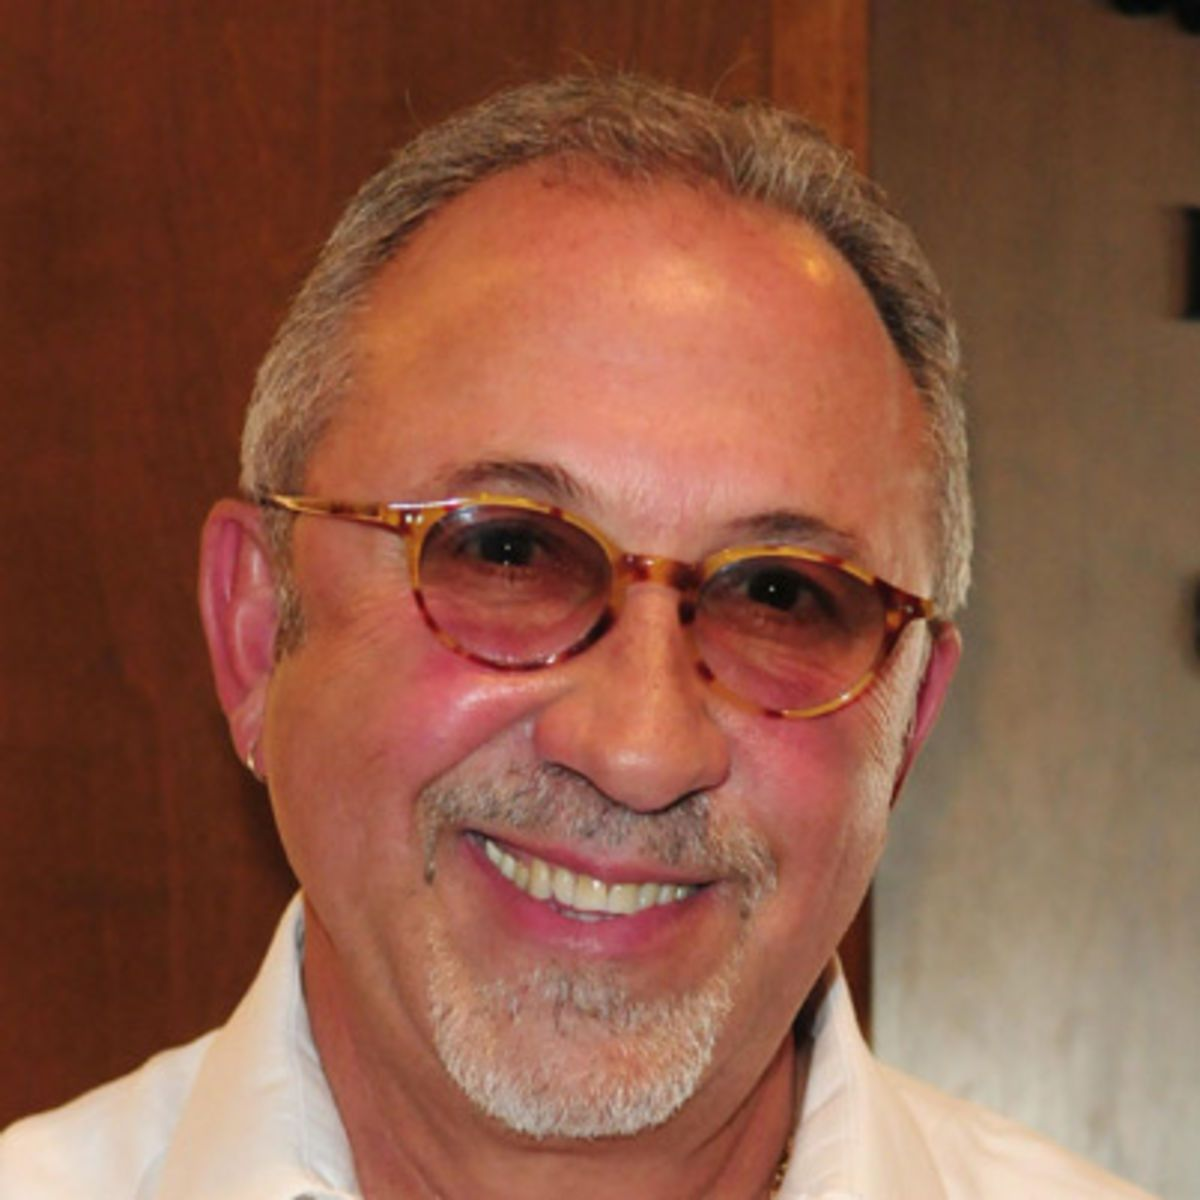 Grammy Winning Music Producer And Songwriter Emilio Estefan Made It Big With Miami Sound Machine